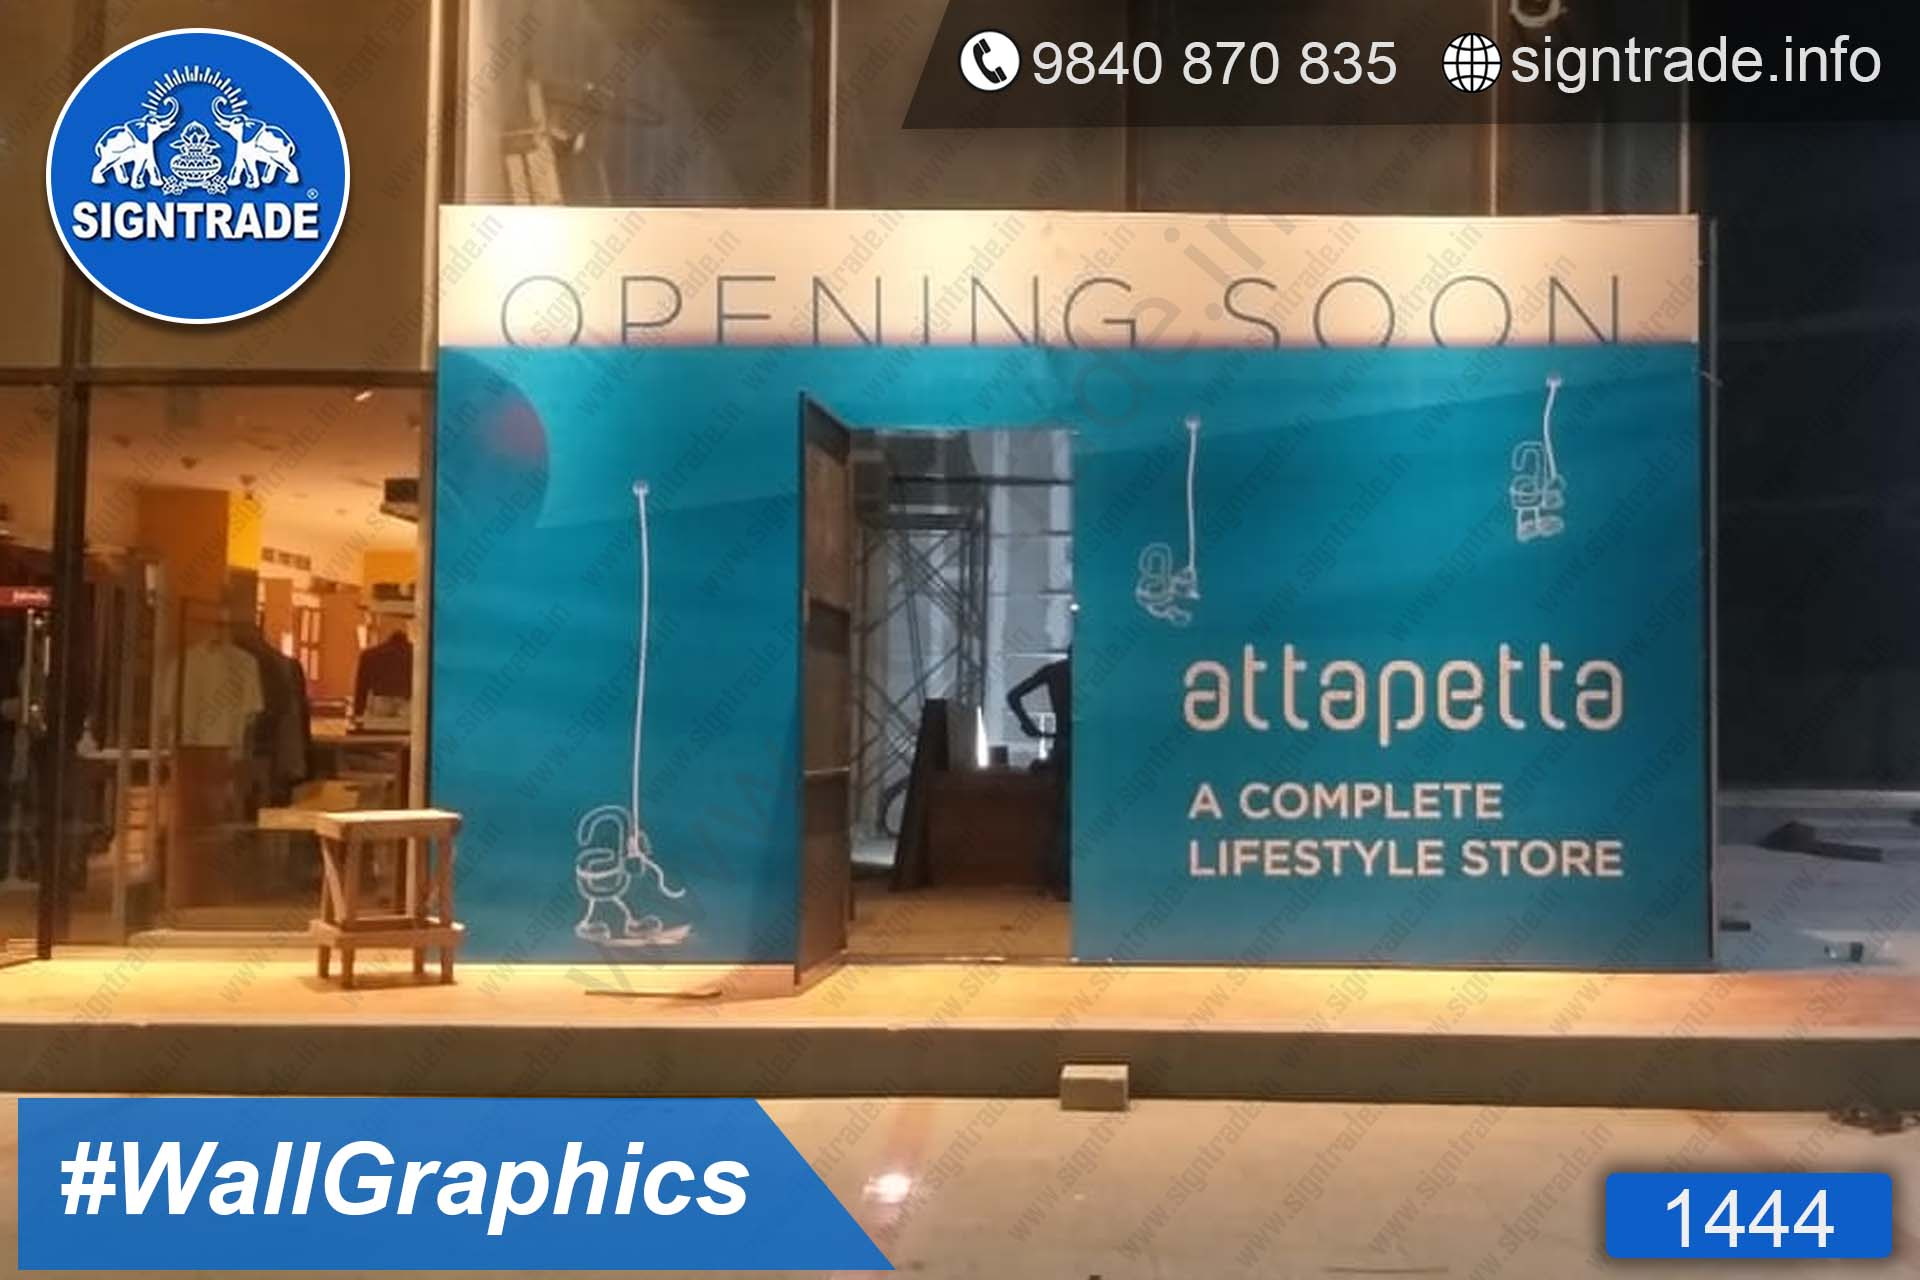 Attapetta - 1444, Vinyl Graphics, Wall Graphics, Wall Wrapping, wall stickers, wall Wraps, Wall Branding